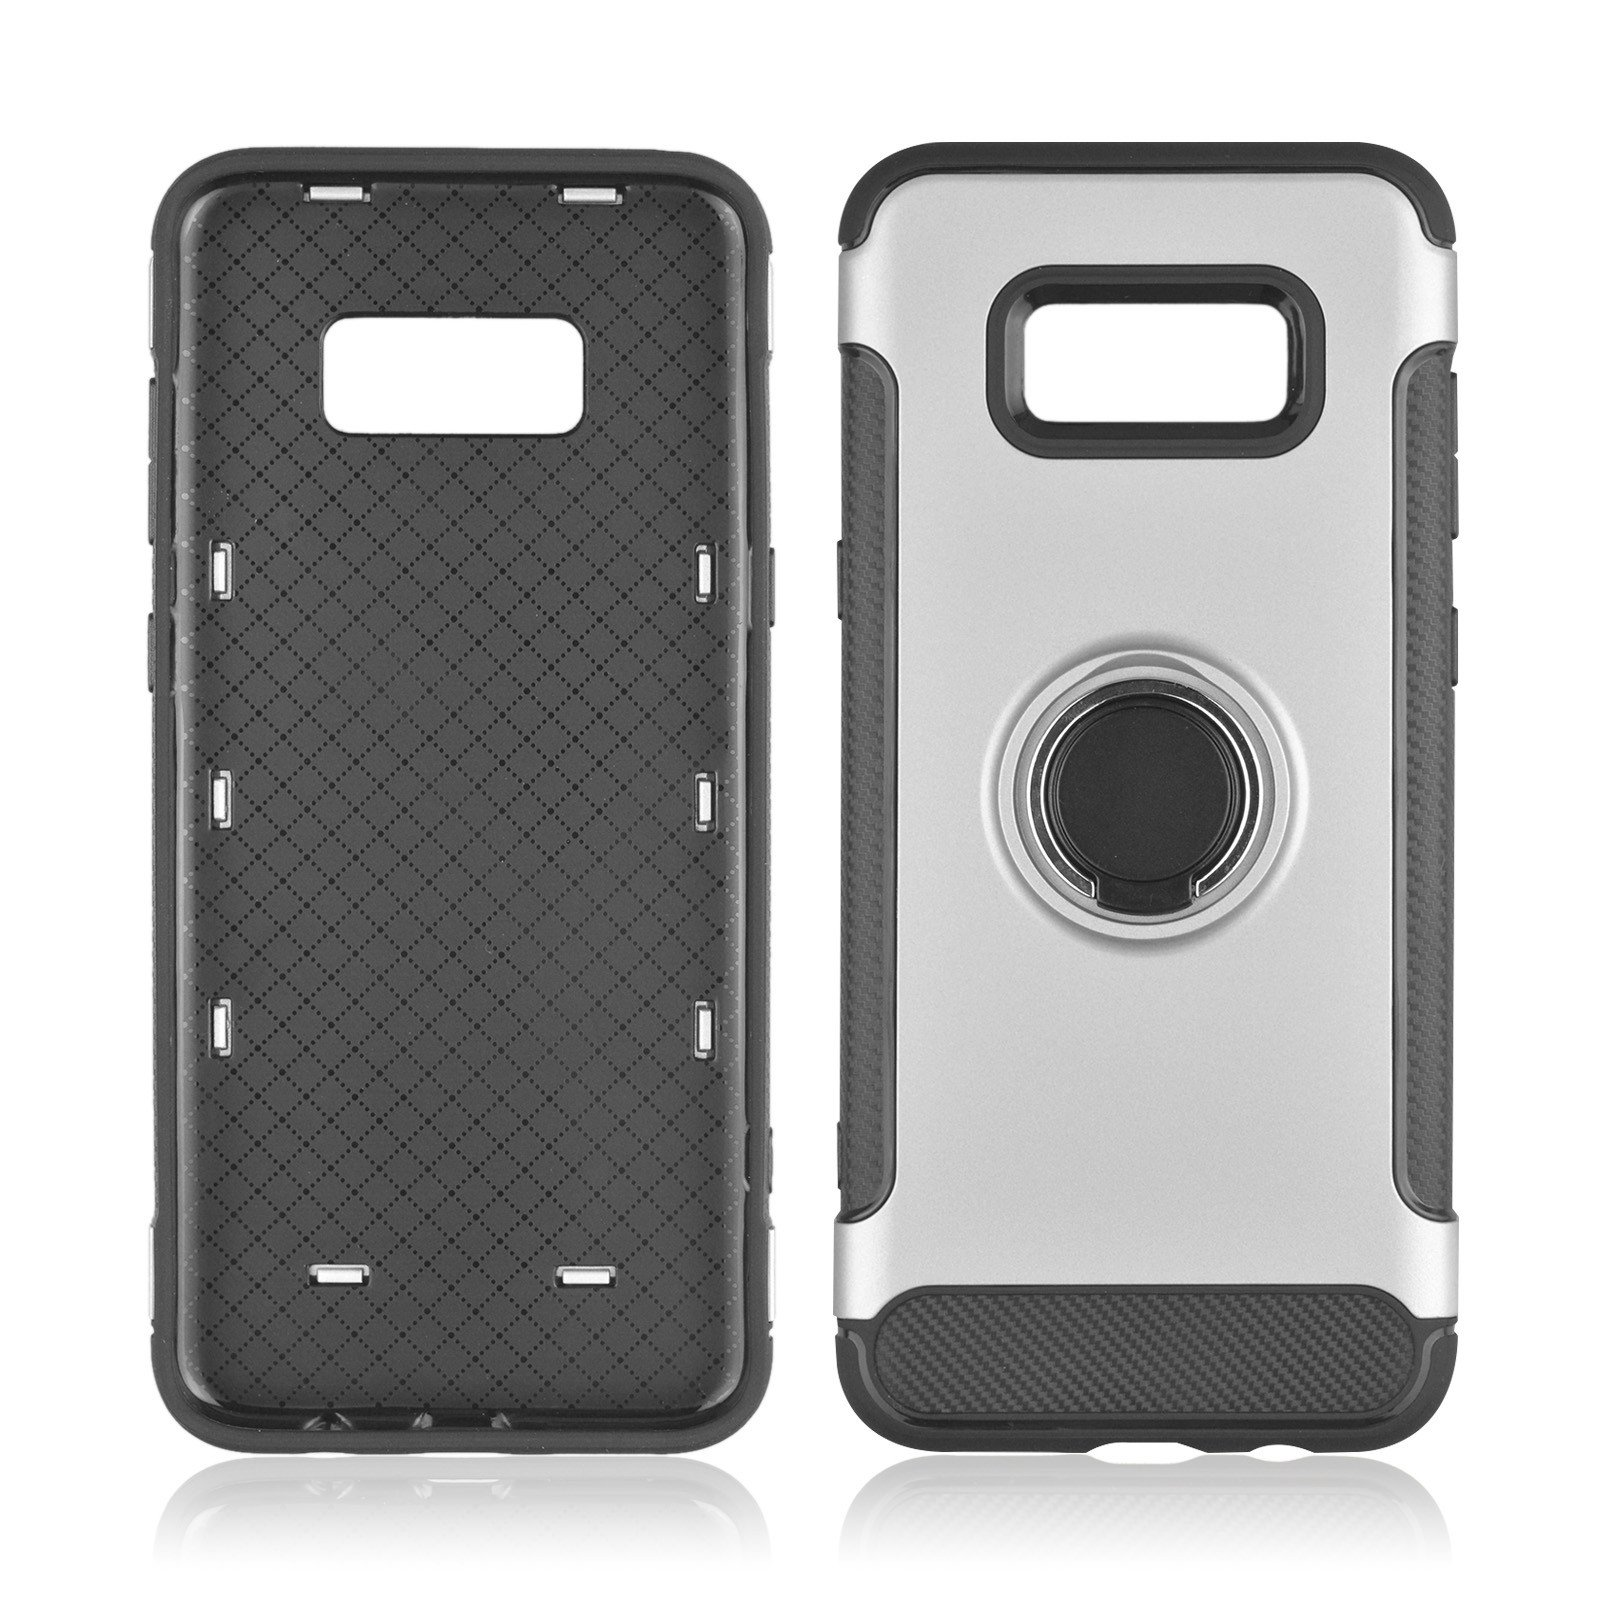 Hard PC Phone Cover 360 Rotate Ring Holder Phone Back Case Shockproof for Samsung Galaxy S8